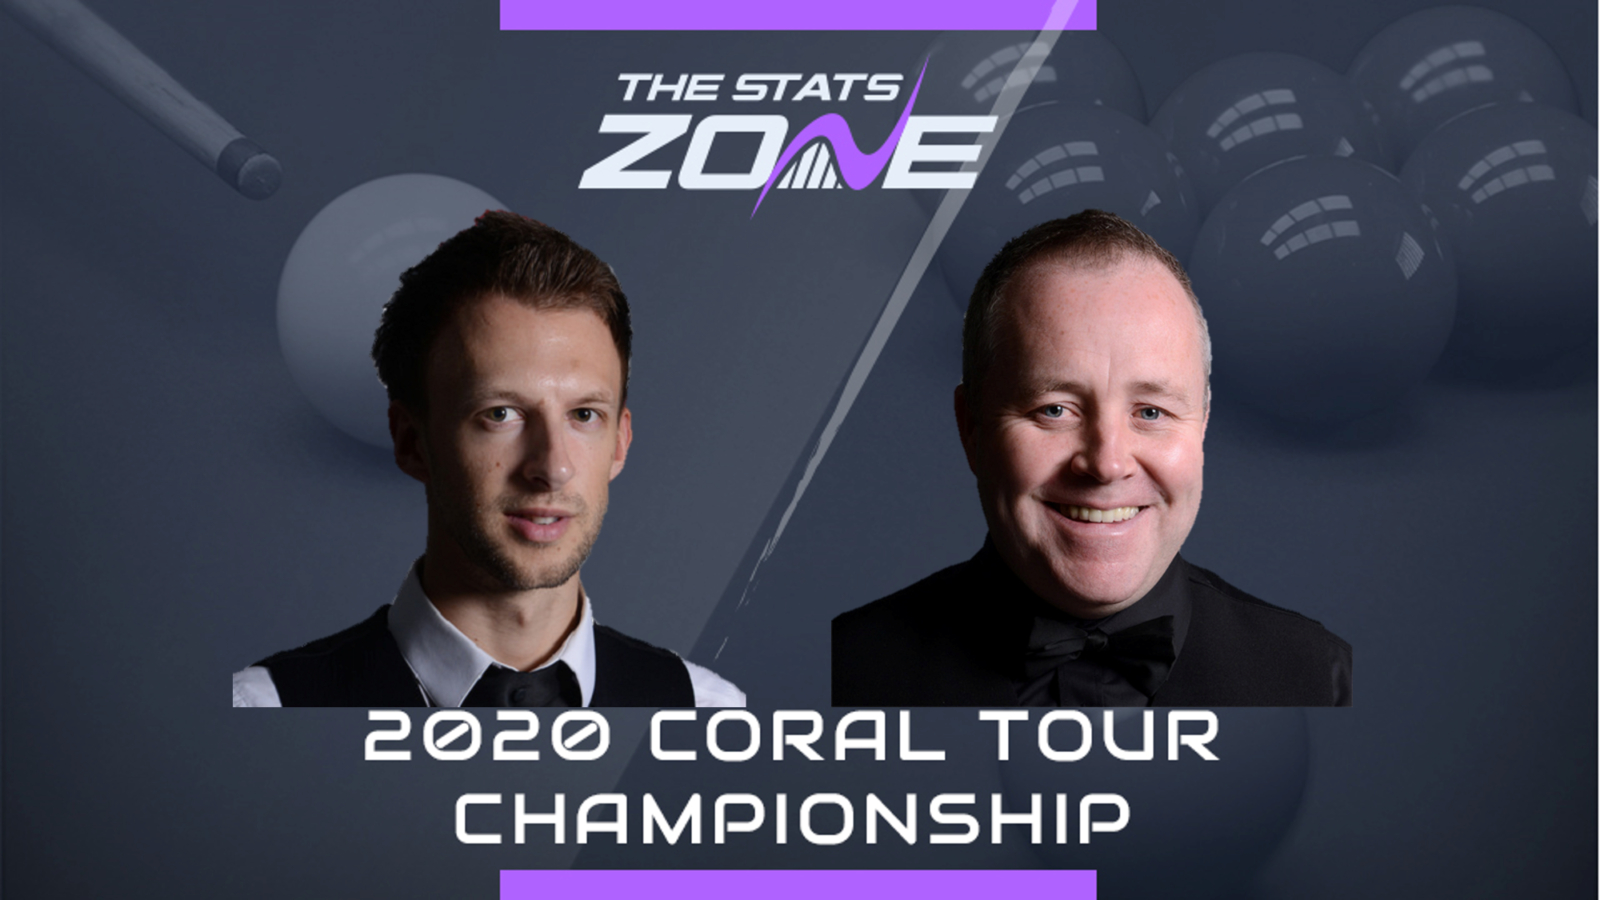 2020 Tour Championship Judd Trump Vs John Higgins Preview Prediction The Stats Zone